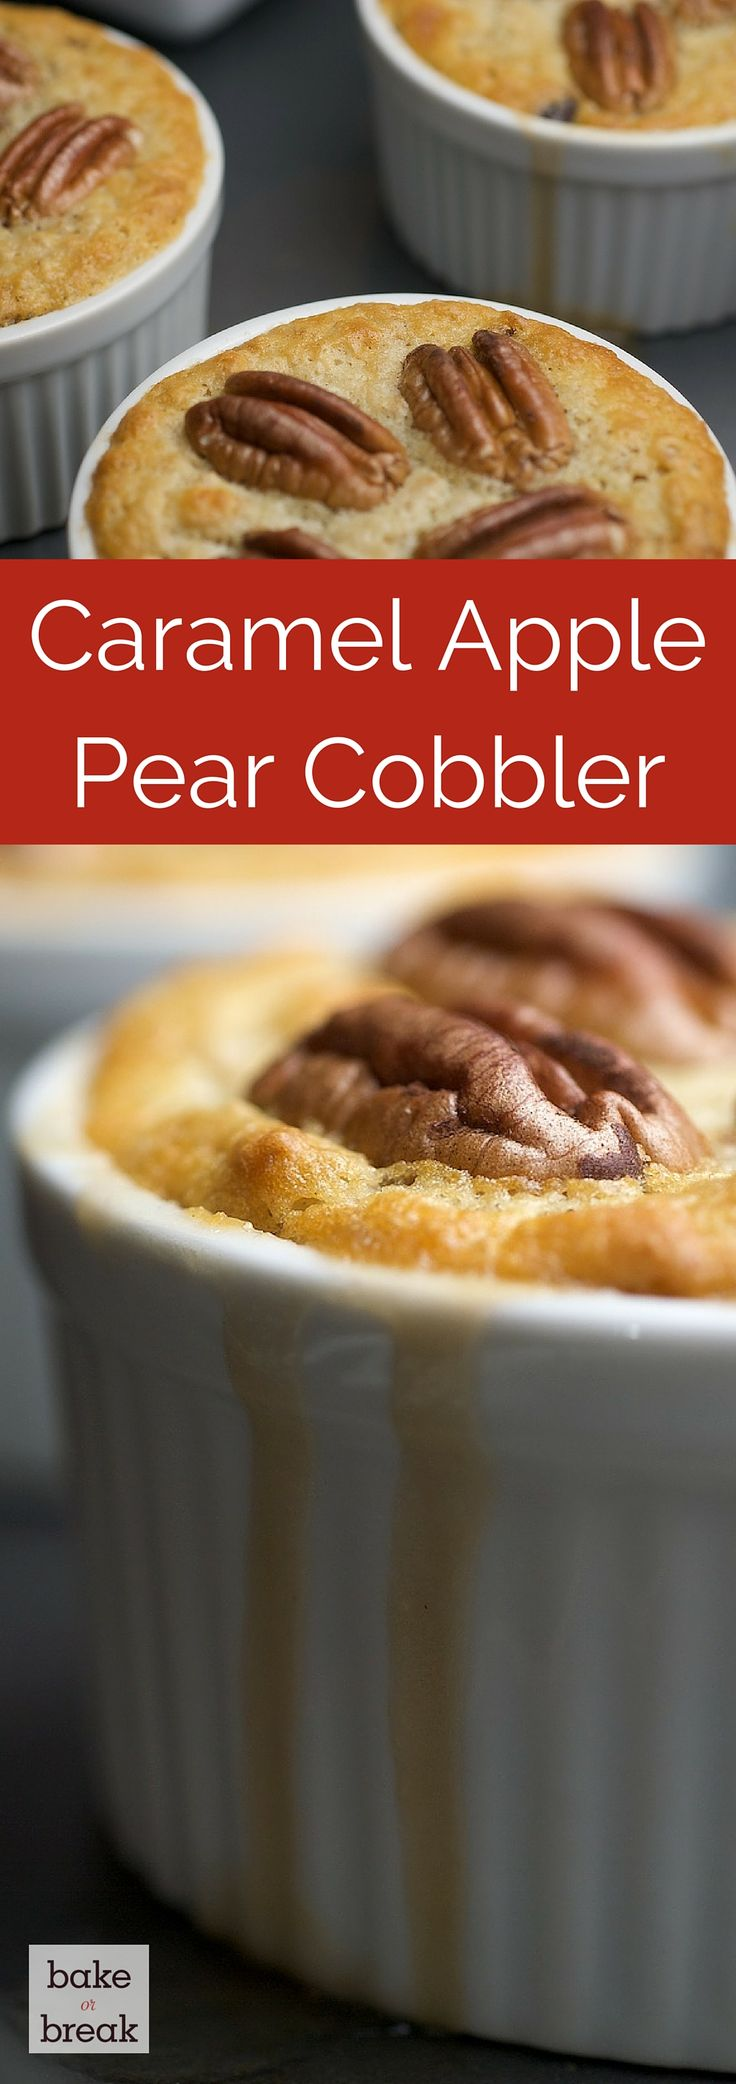 Caramel Apple Pear Cobbler is a delicious combination of fall flavors in a warm, comforting dessert! ~ http://www.bakeorbreak.com